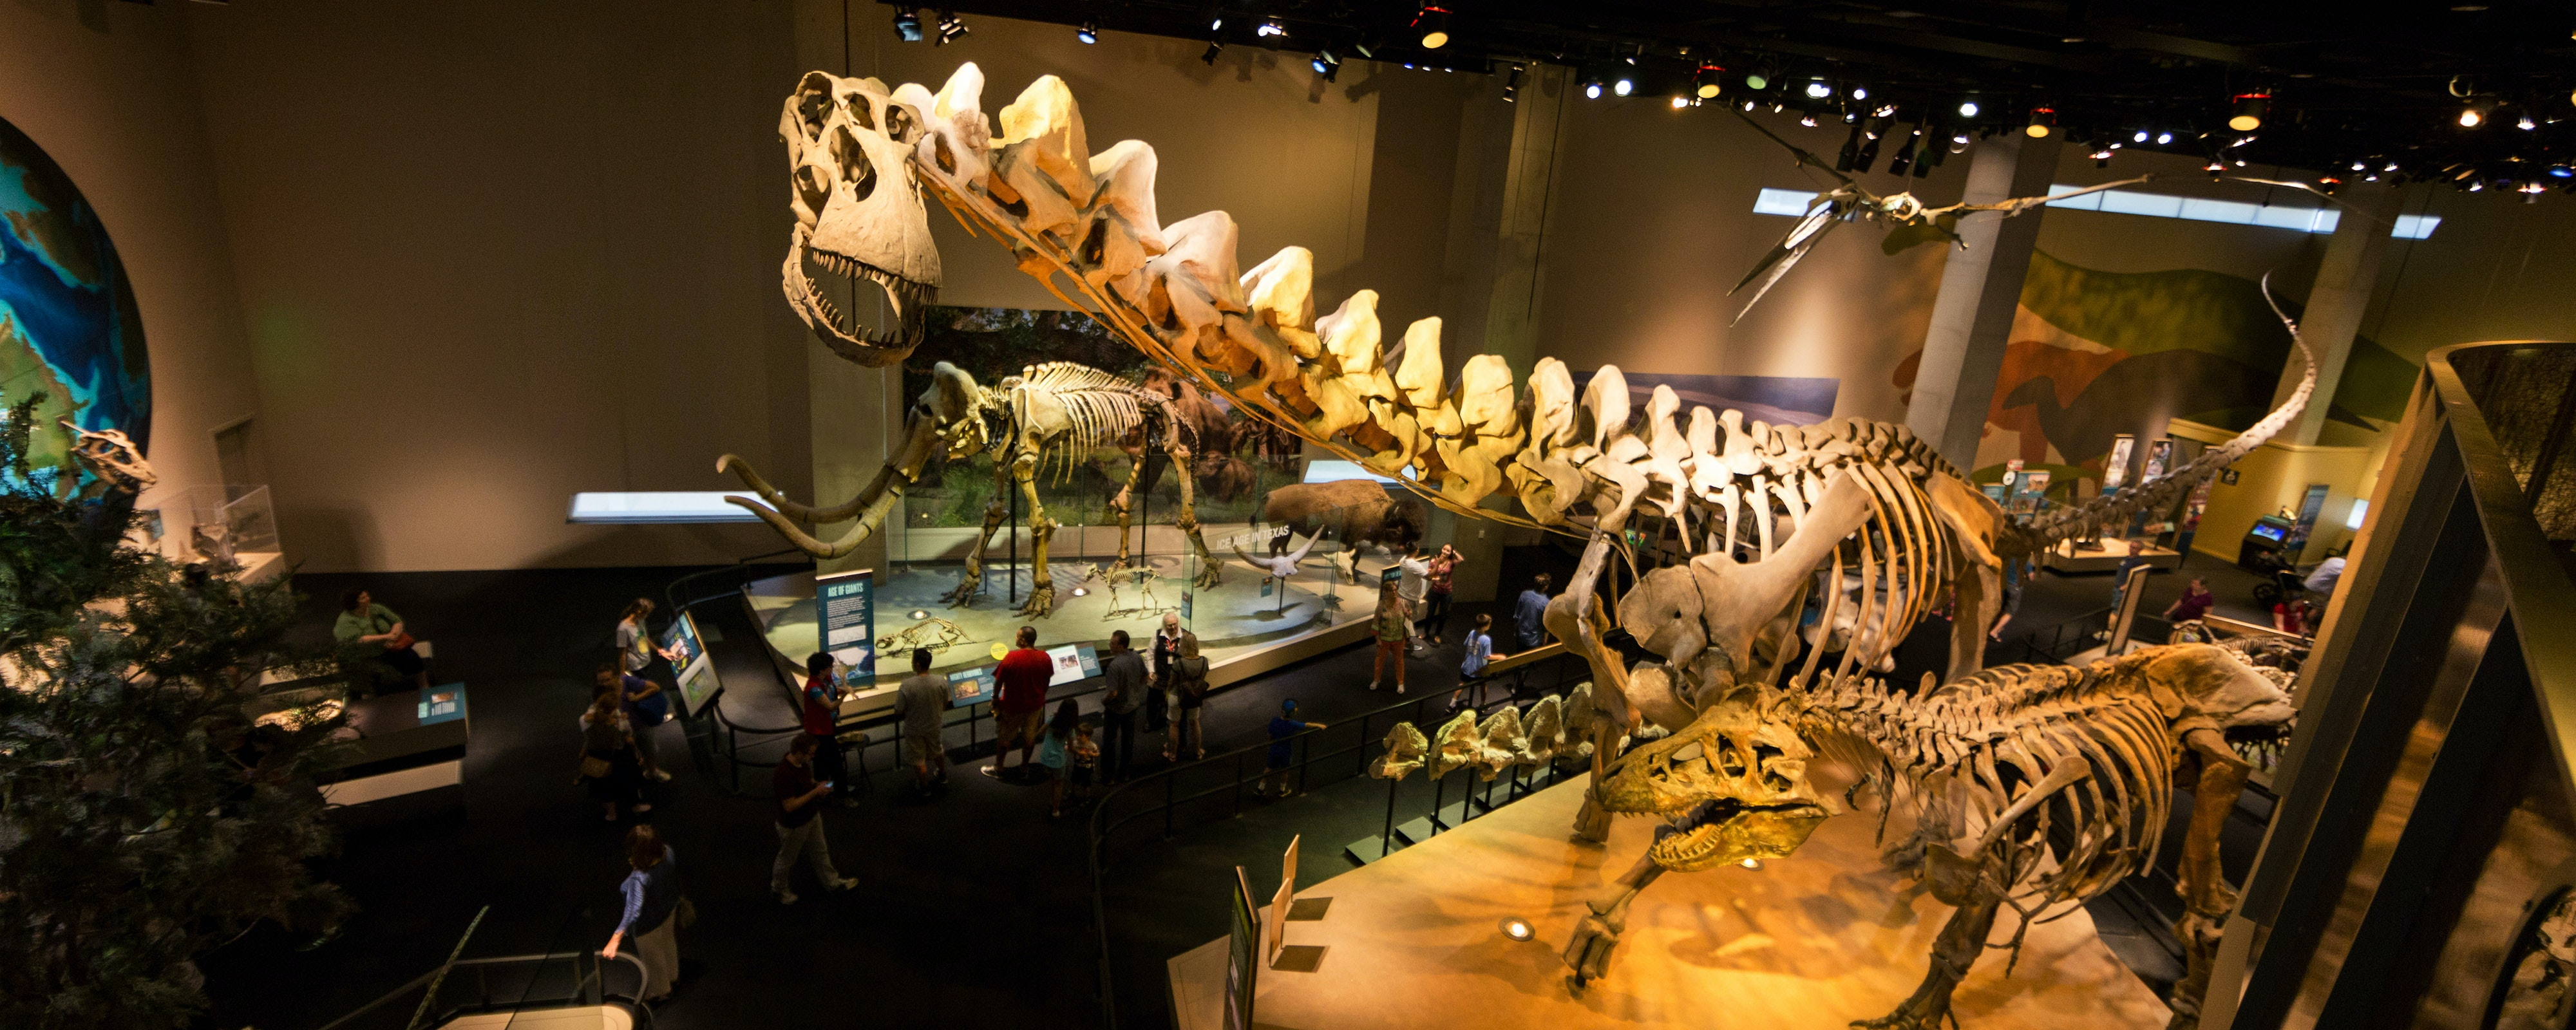 A view of the The gargantuan fossil